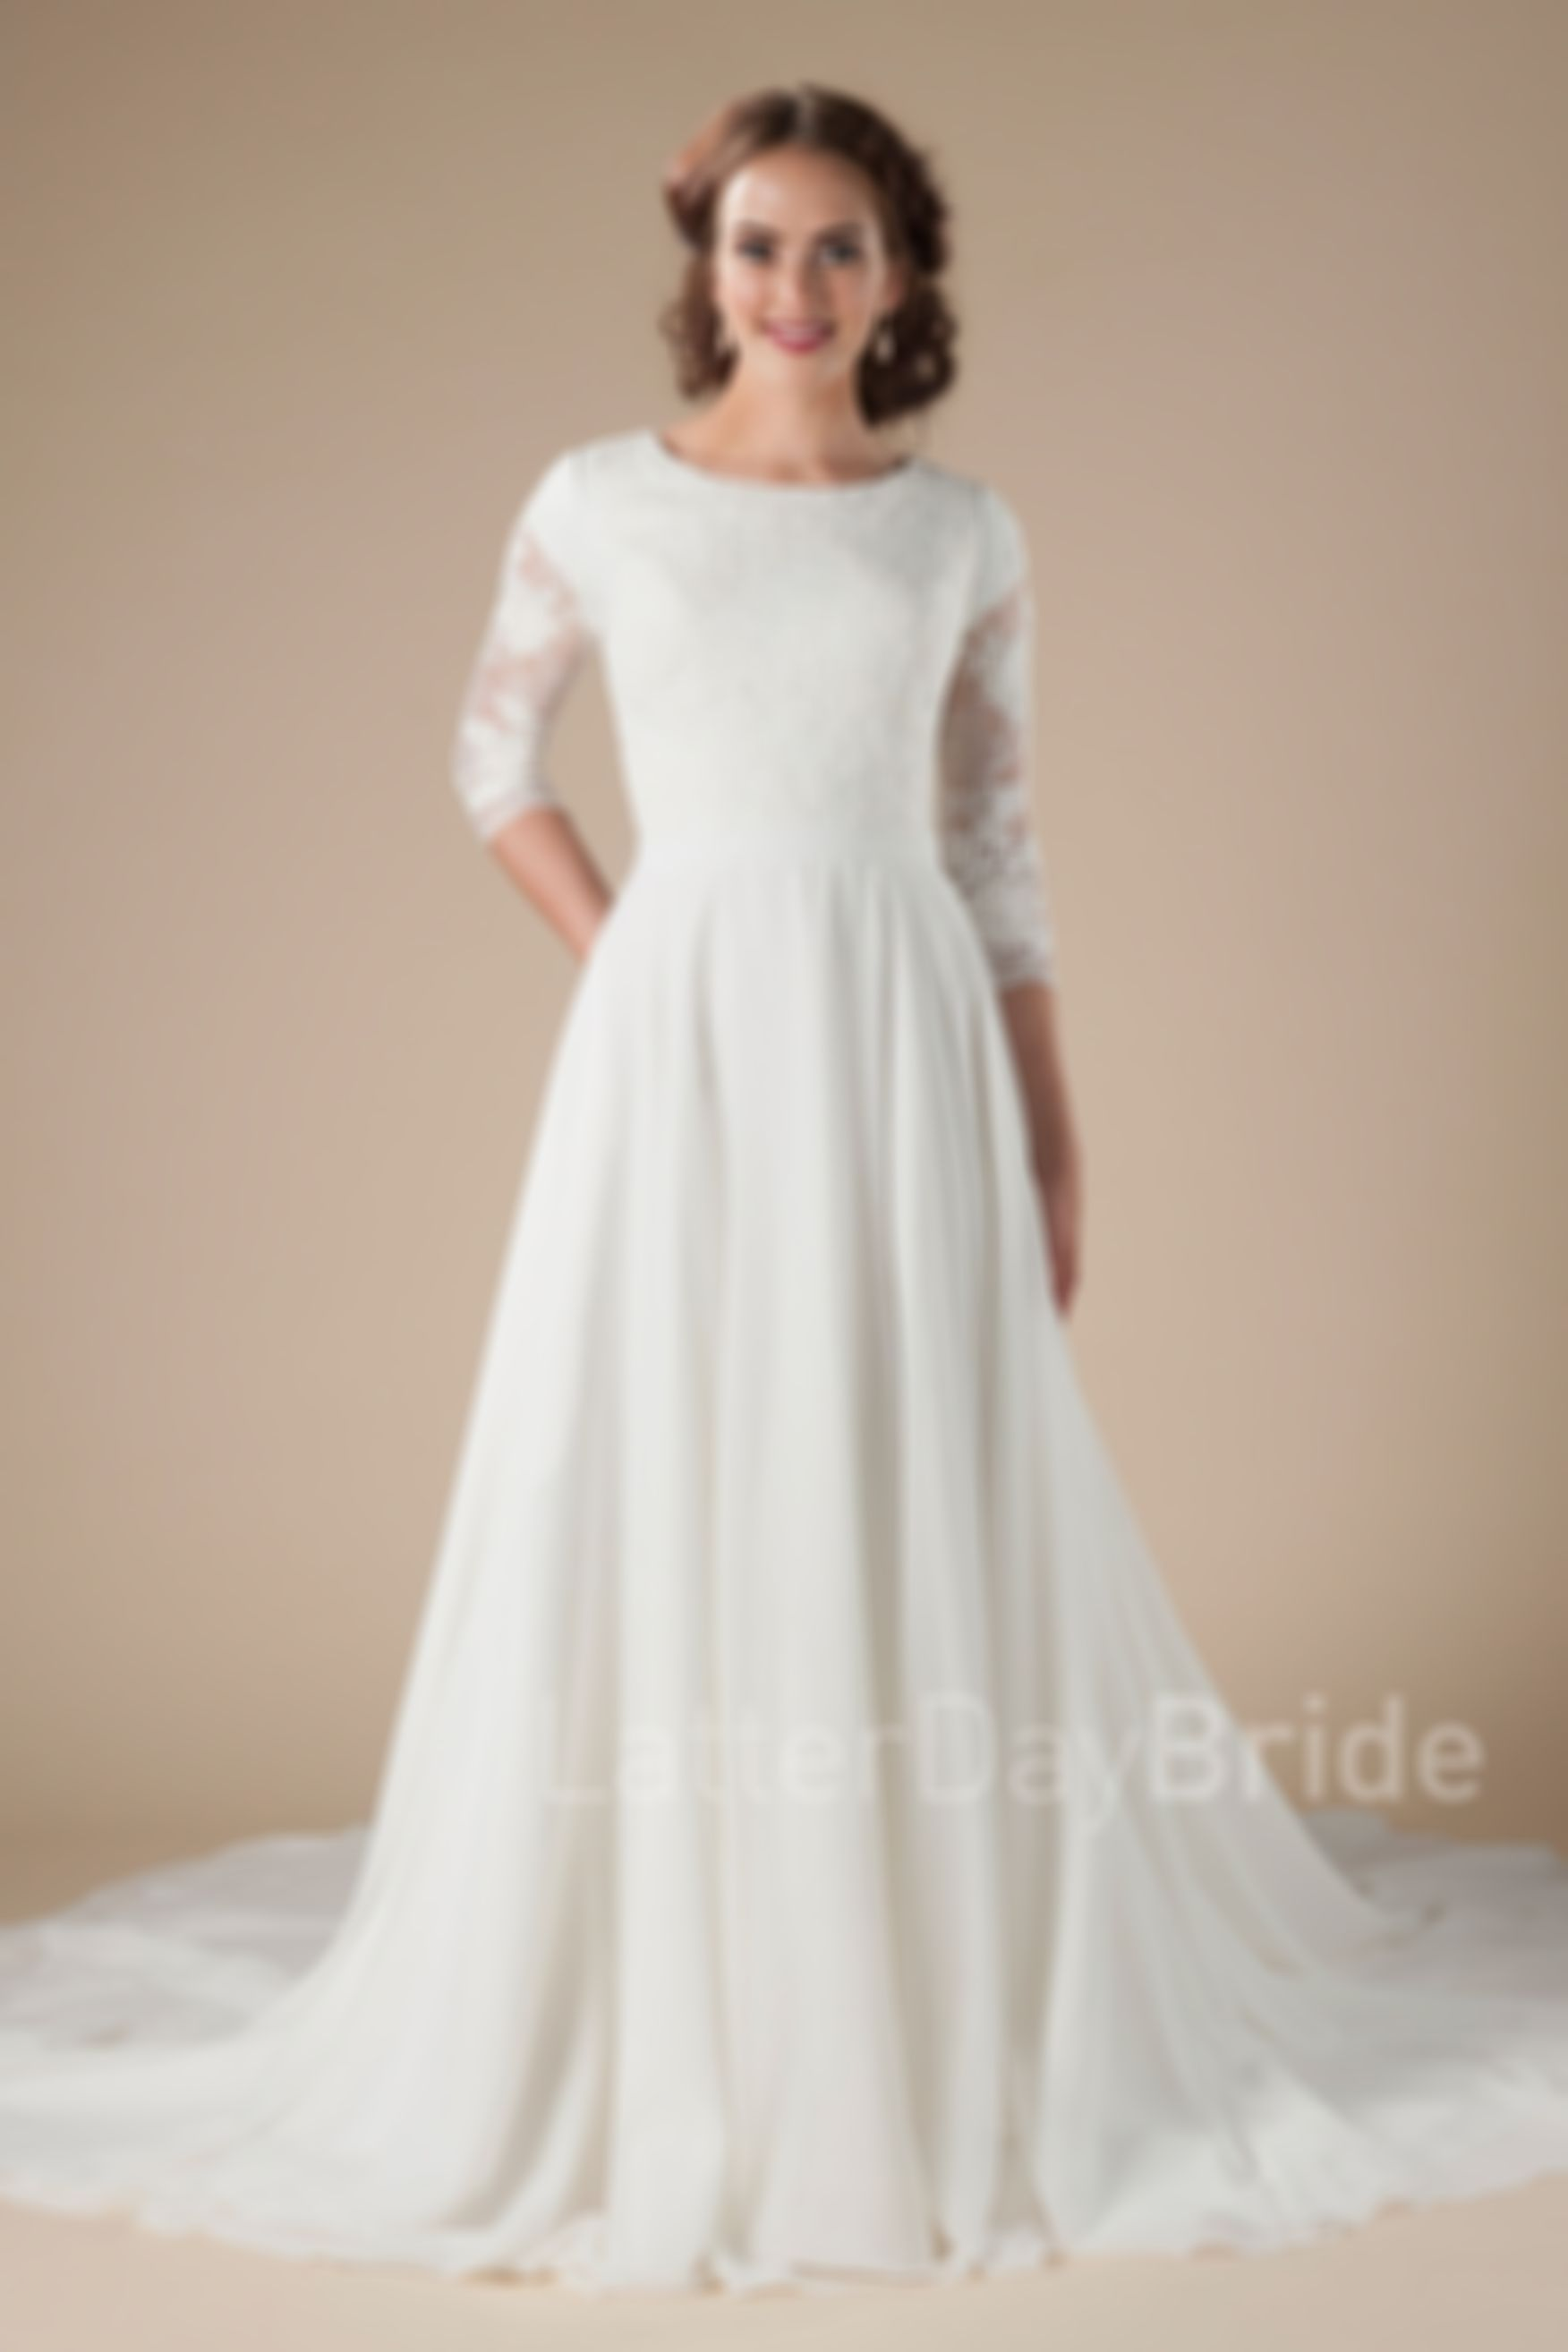 2020 New Wedding Dress Fashion Dress sophisticated mother of the bride dresses formal jumpsuits for wedding guest